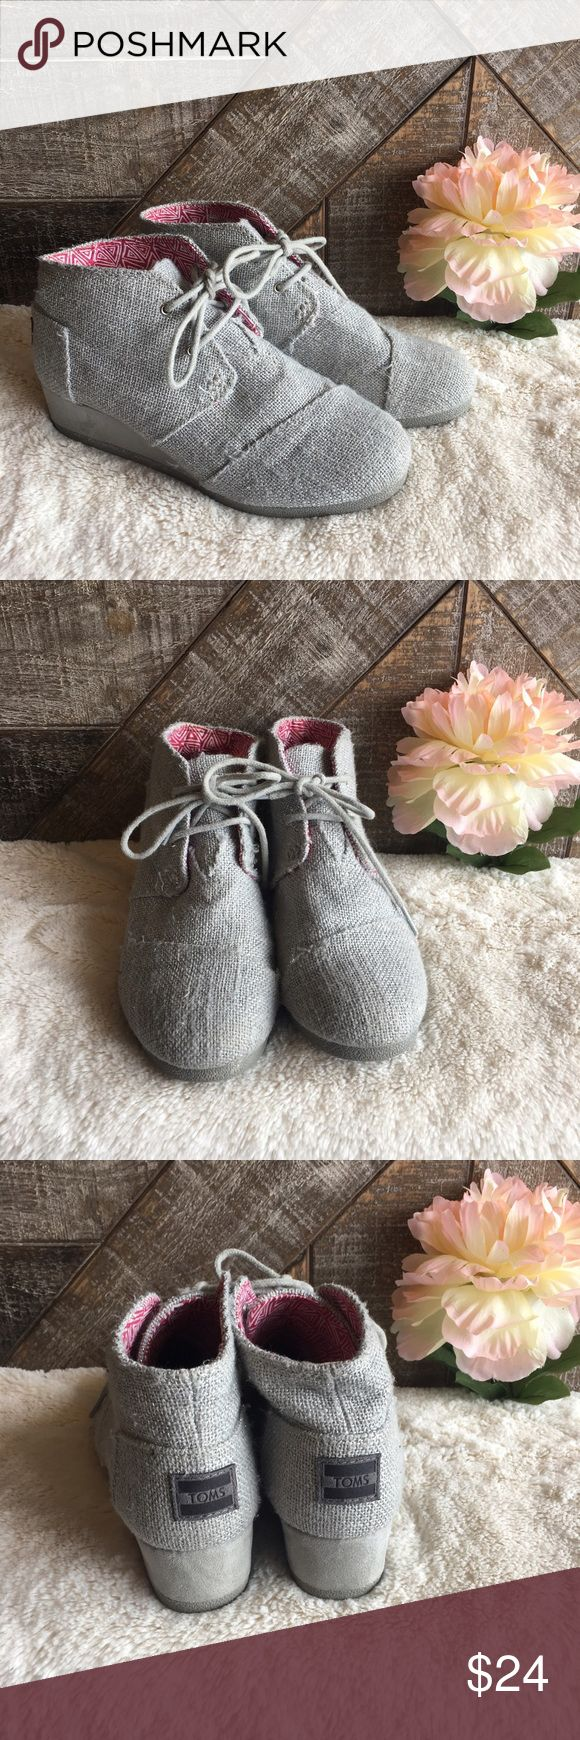 Kids Silver TOMS Desert Wedges Girls Sliver Gray TOMS Desert Wedge Booties in good used condition. Minor Wear on front of shoes, shown in photos. Size 4. No trades, reasonable offers through the offer button. TOMS Shoes Boots